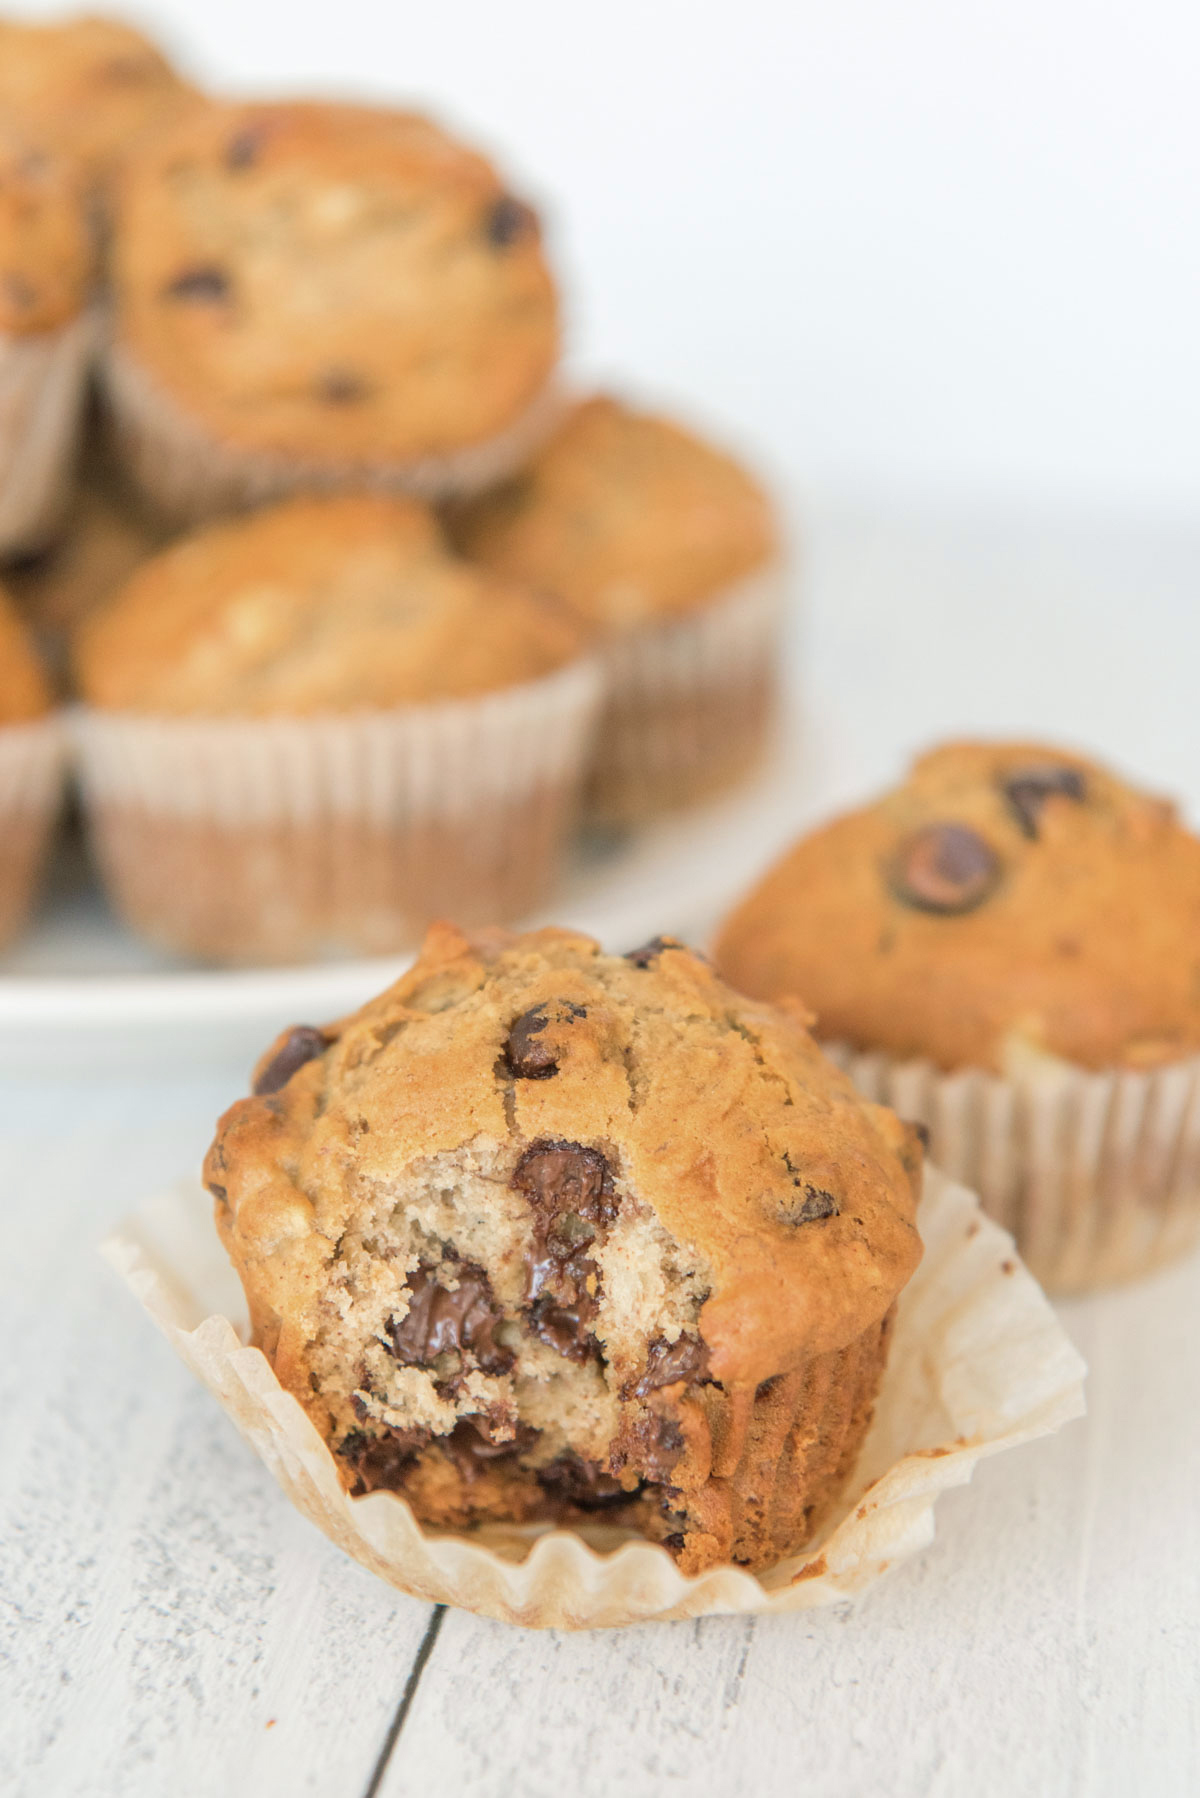 chocolate chip muffin, muffin wrapper, white plate and stack of muffins,